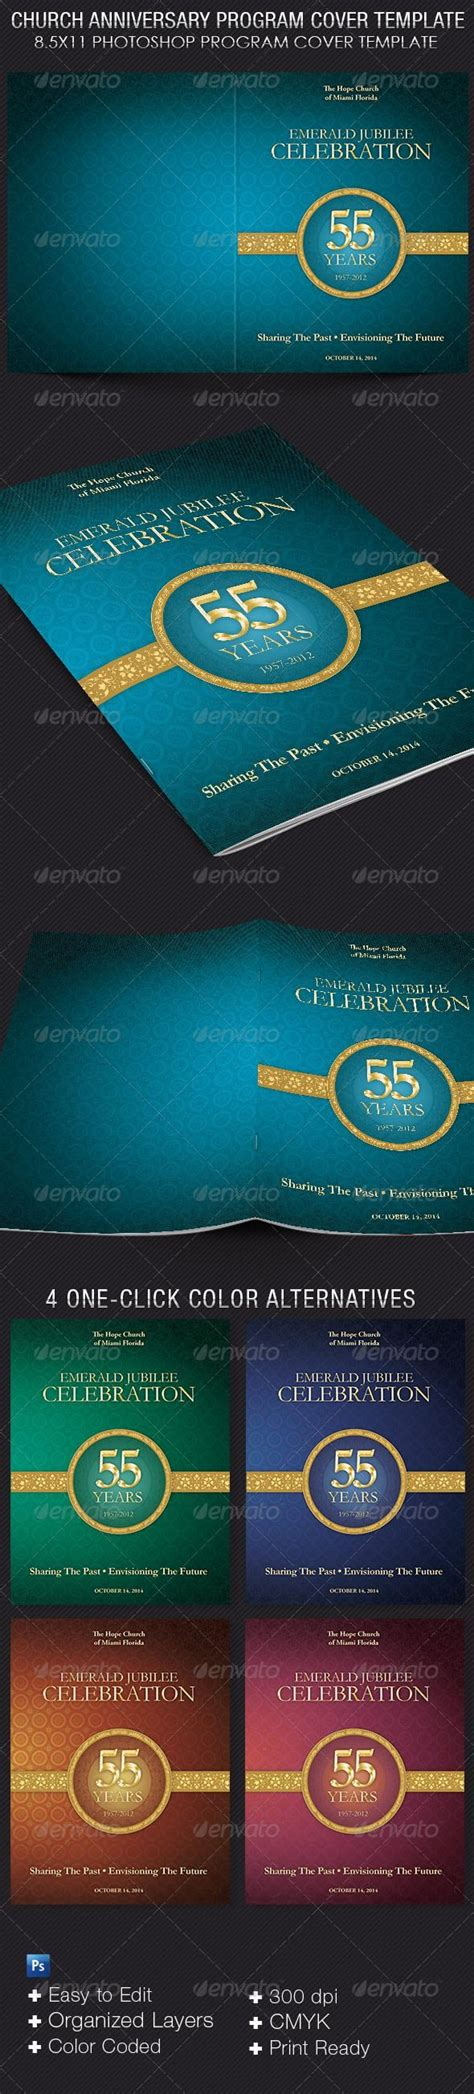 17 Best Images About 20th Anniversary Logo Ideas On Pinterest Vinyl Banners Vintage Wedding Church Program Covers Templates